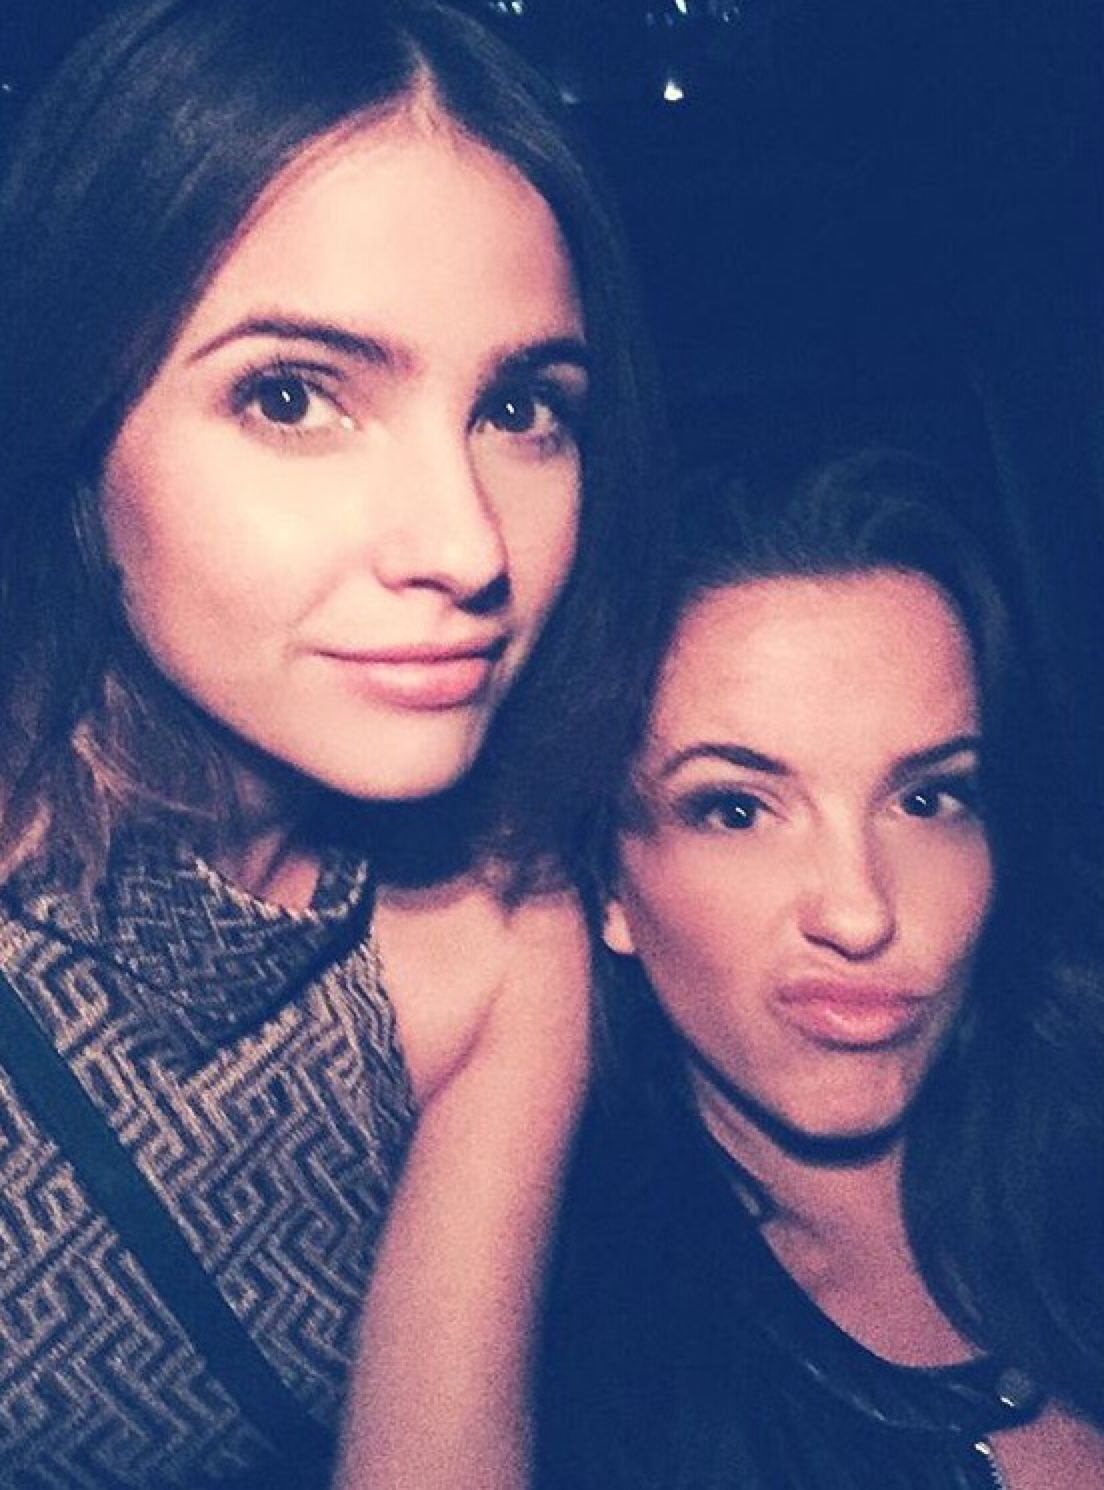 #ShelleyHennig